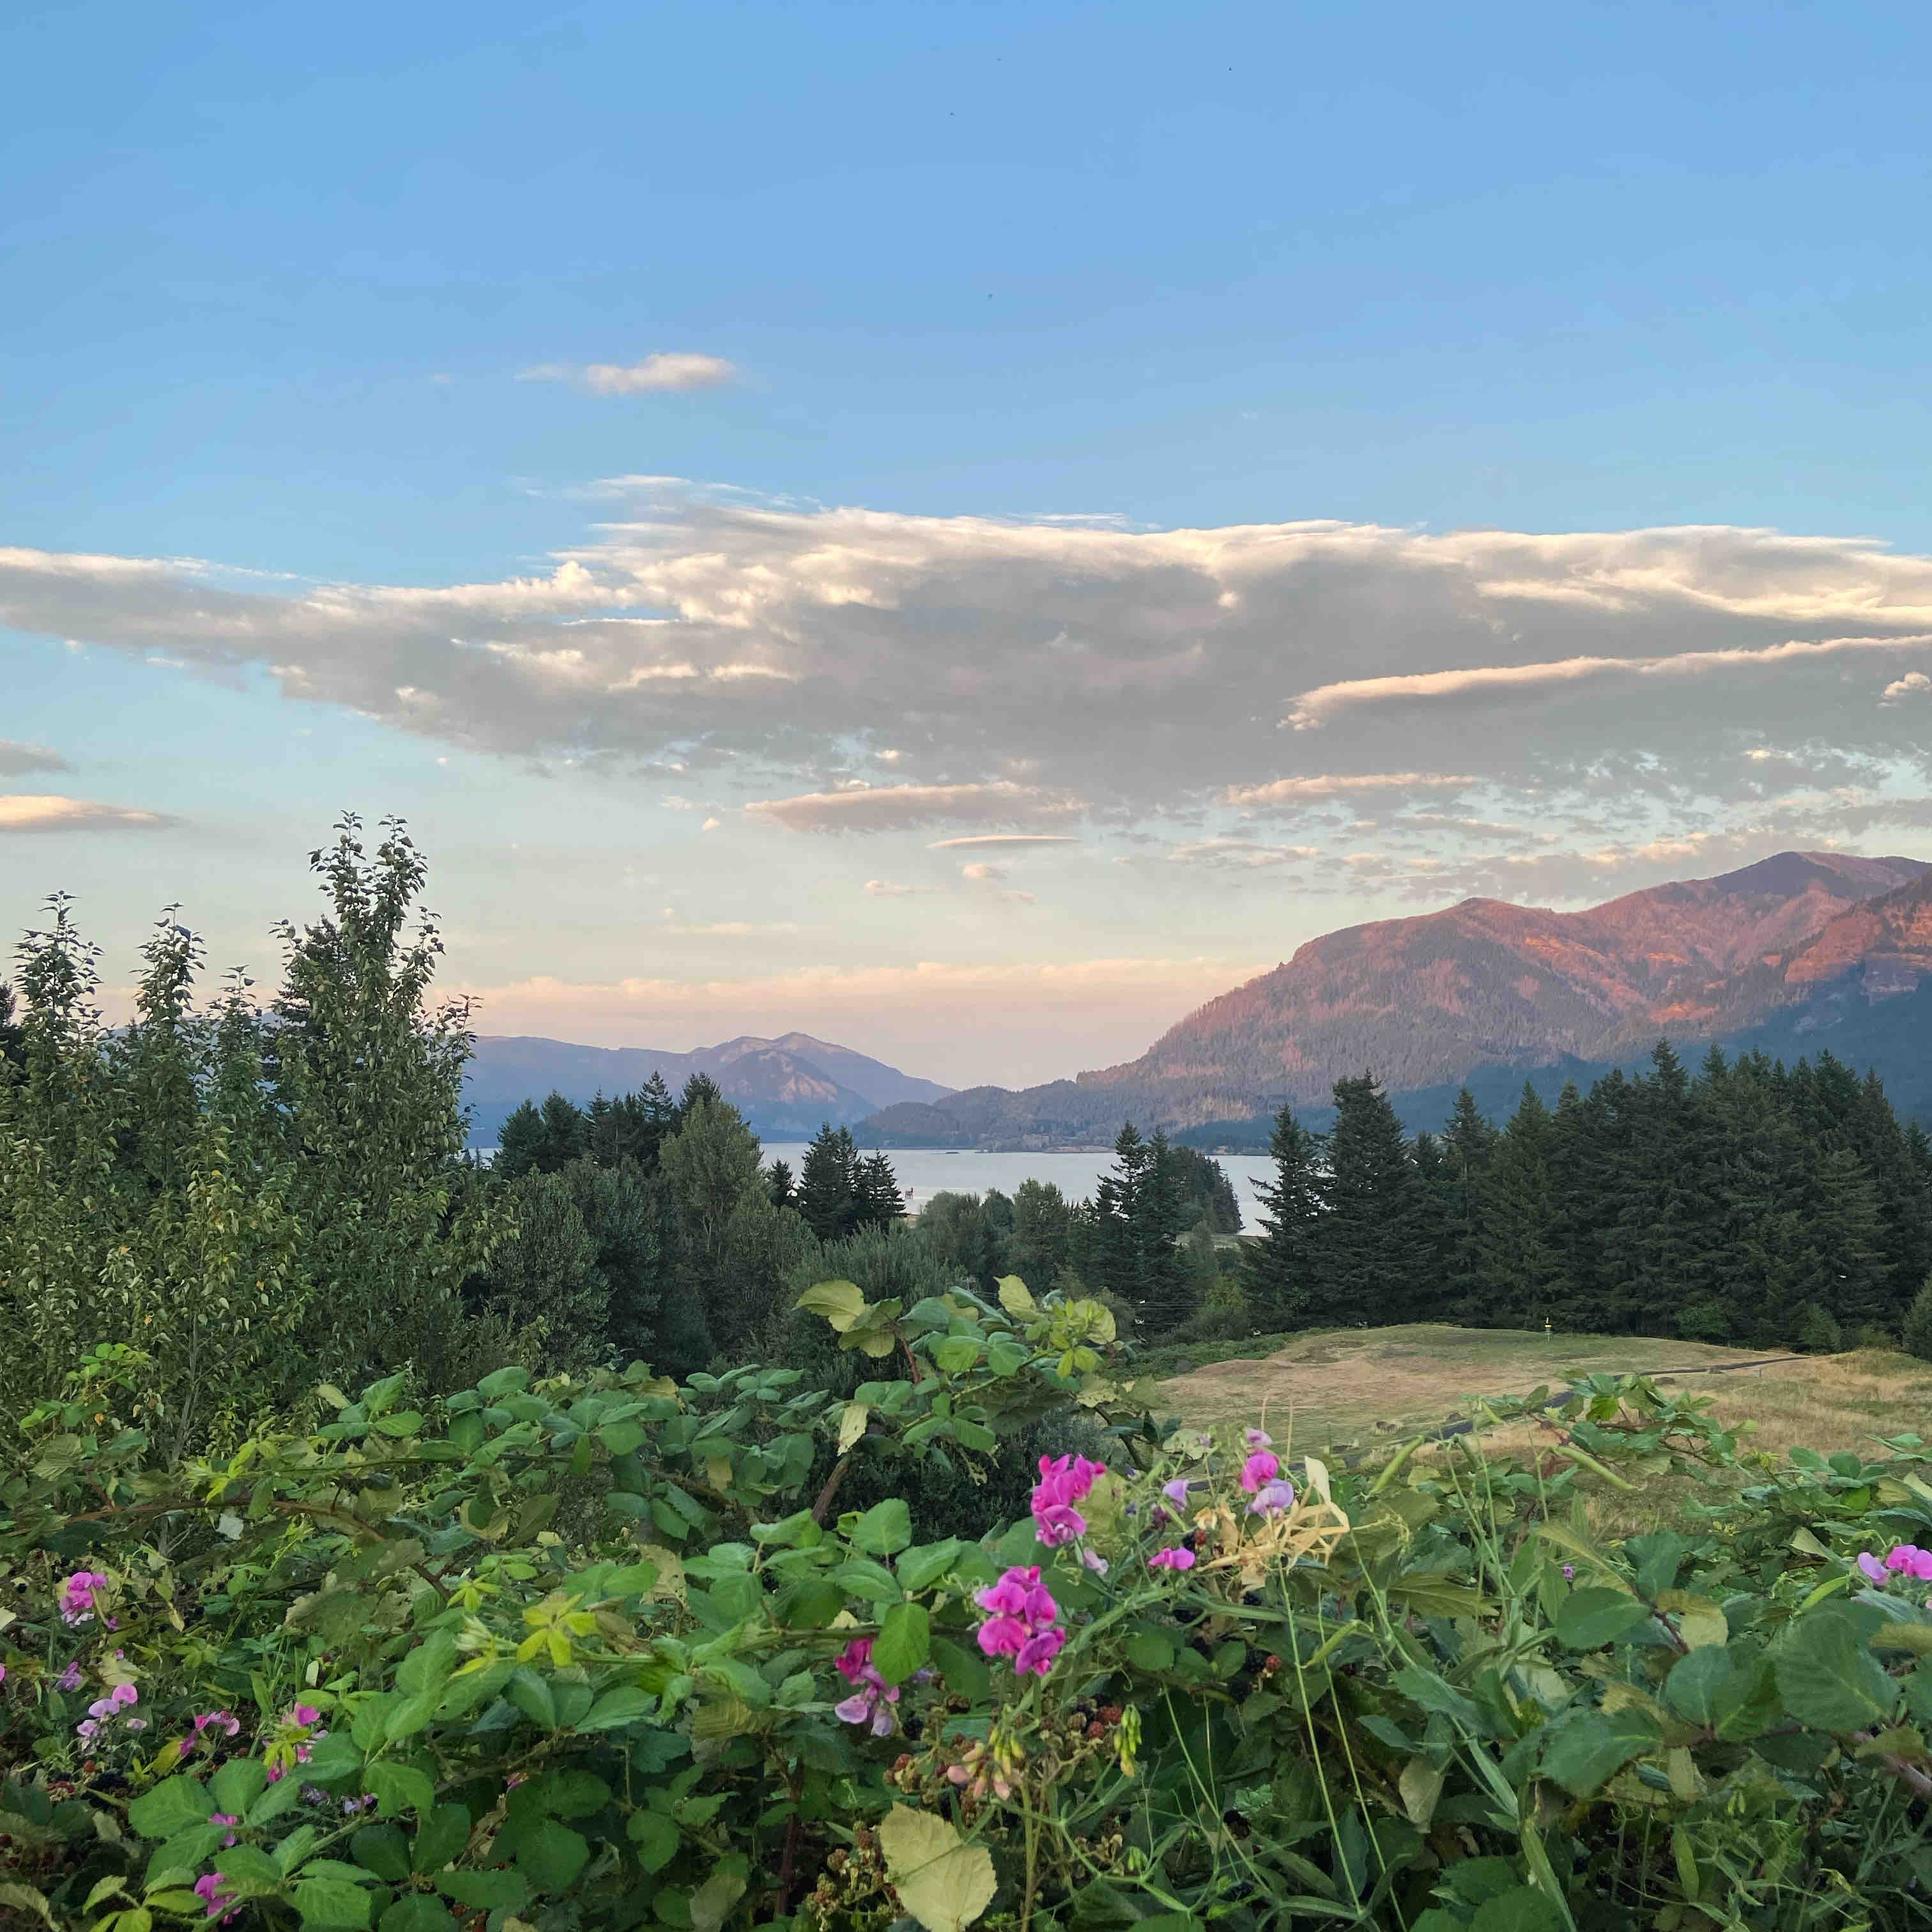 A view of the Columbia River Gorge from the 8th tee box on The Backyard Disc Course at Skamania Lodge.